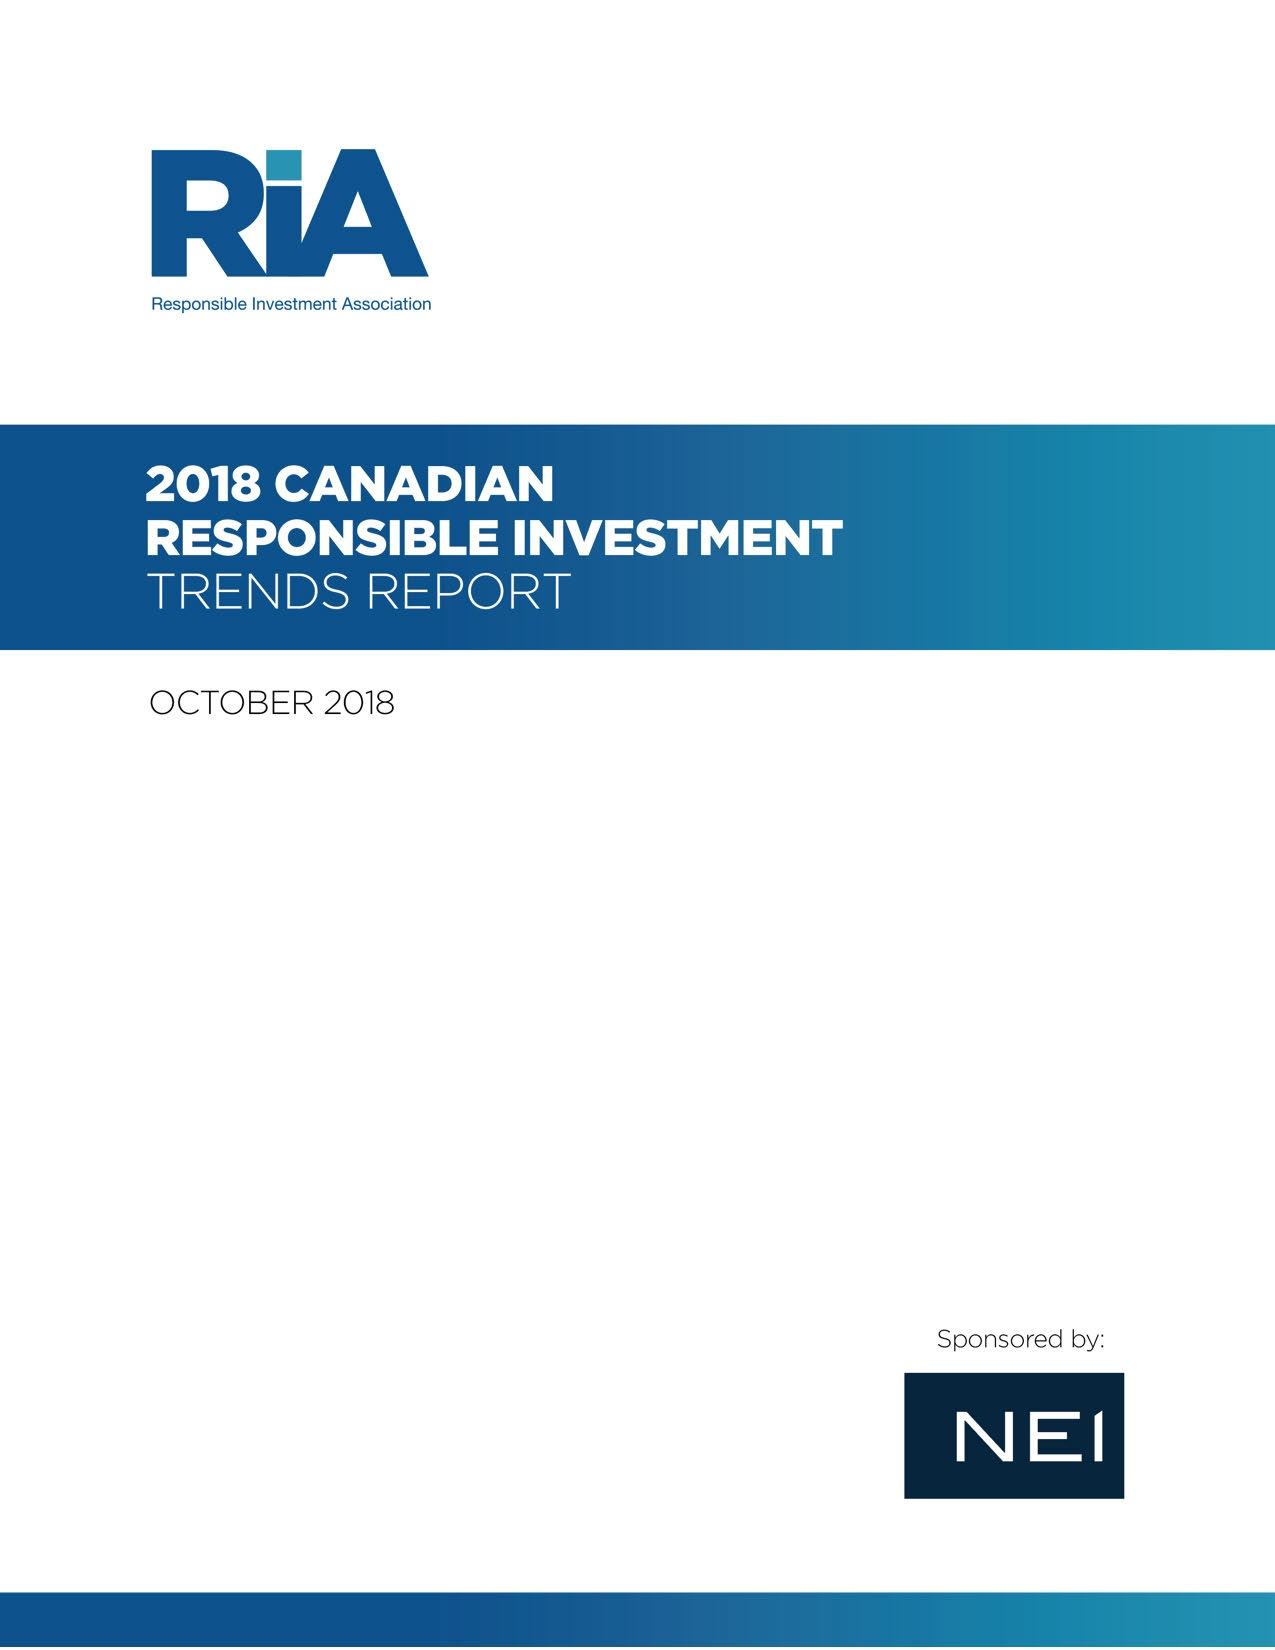 Pages from 2018-RI-Trends-Report-FINAL